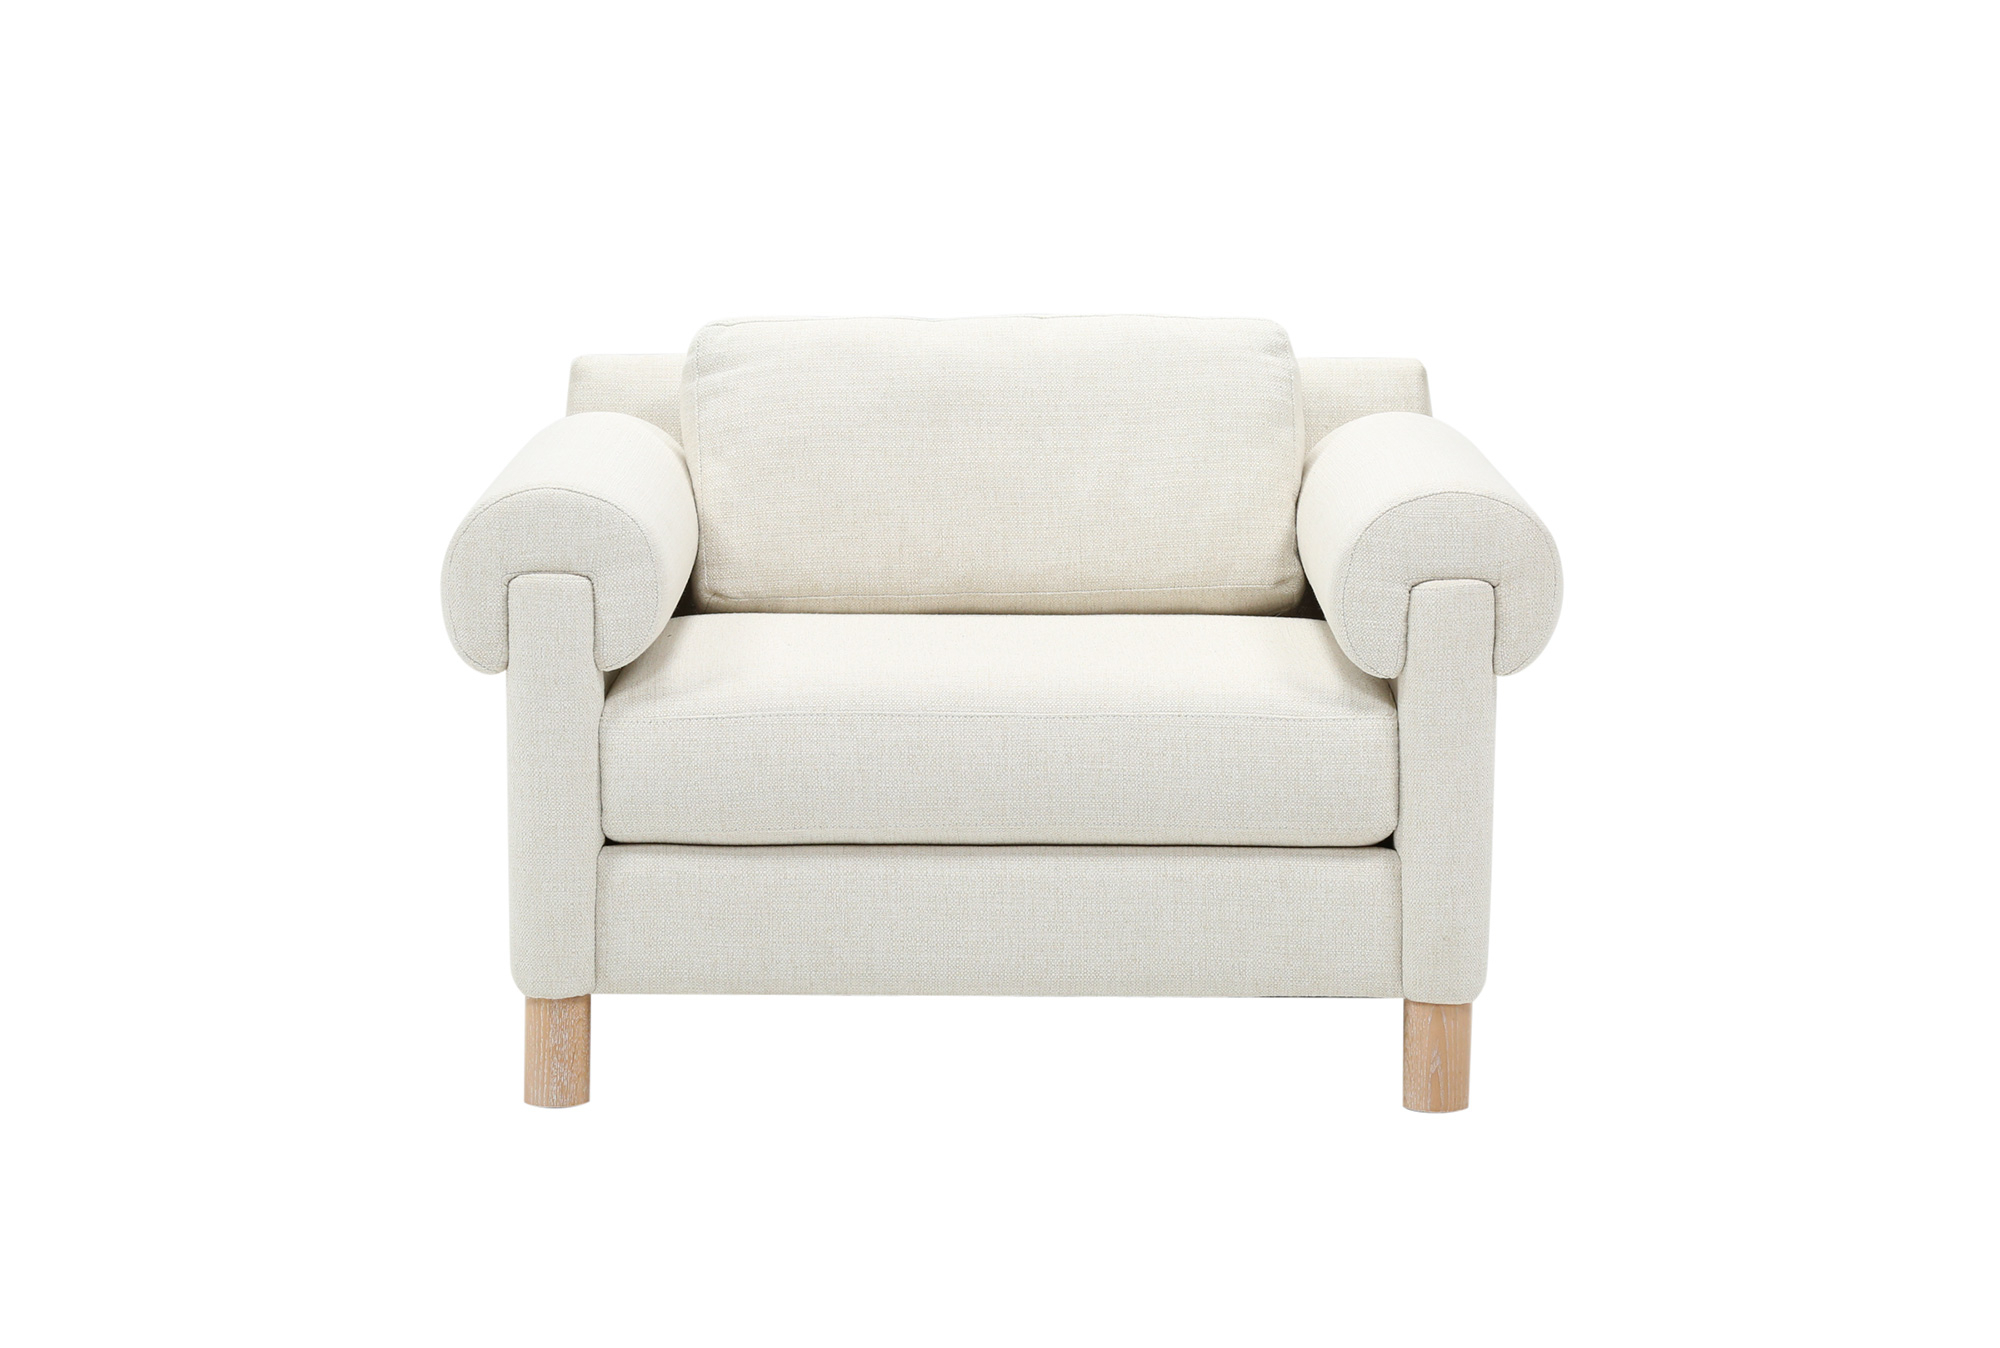 Nate Berkus, Jeremiah Brent For Living Spaces Furniture | People Throughout Gwen Sofa Chairs By Nate Berkus And Jeremiah Brent (Image 13 of 20)